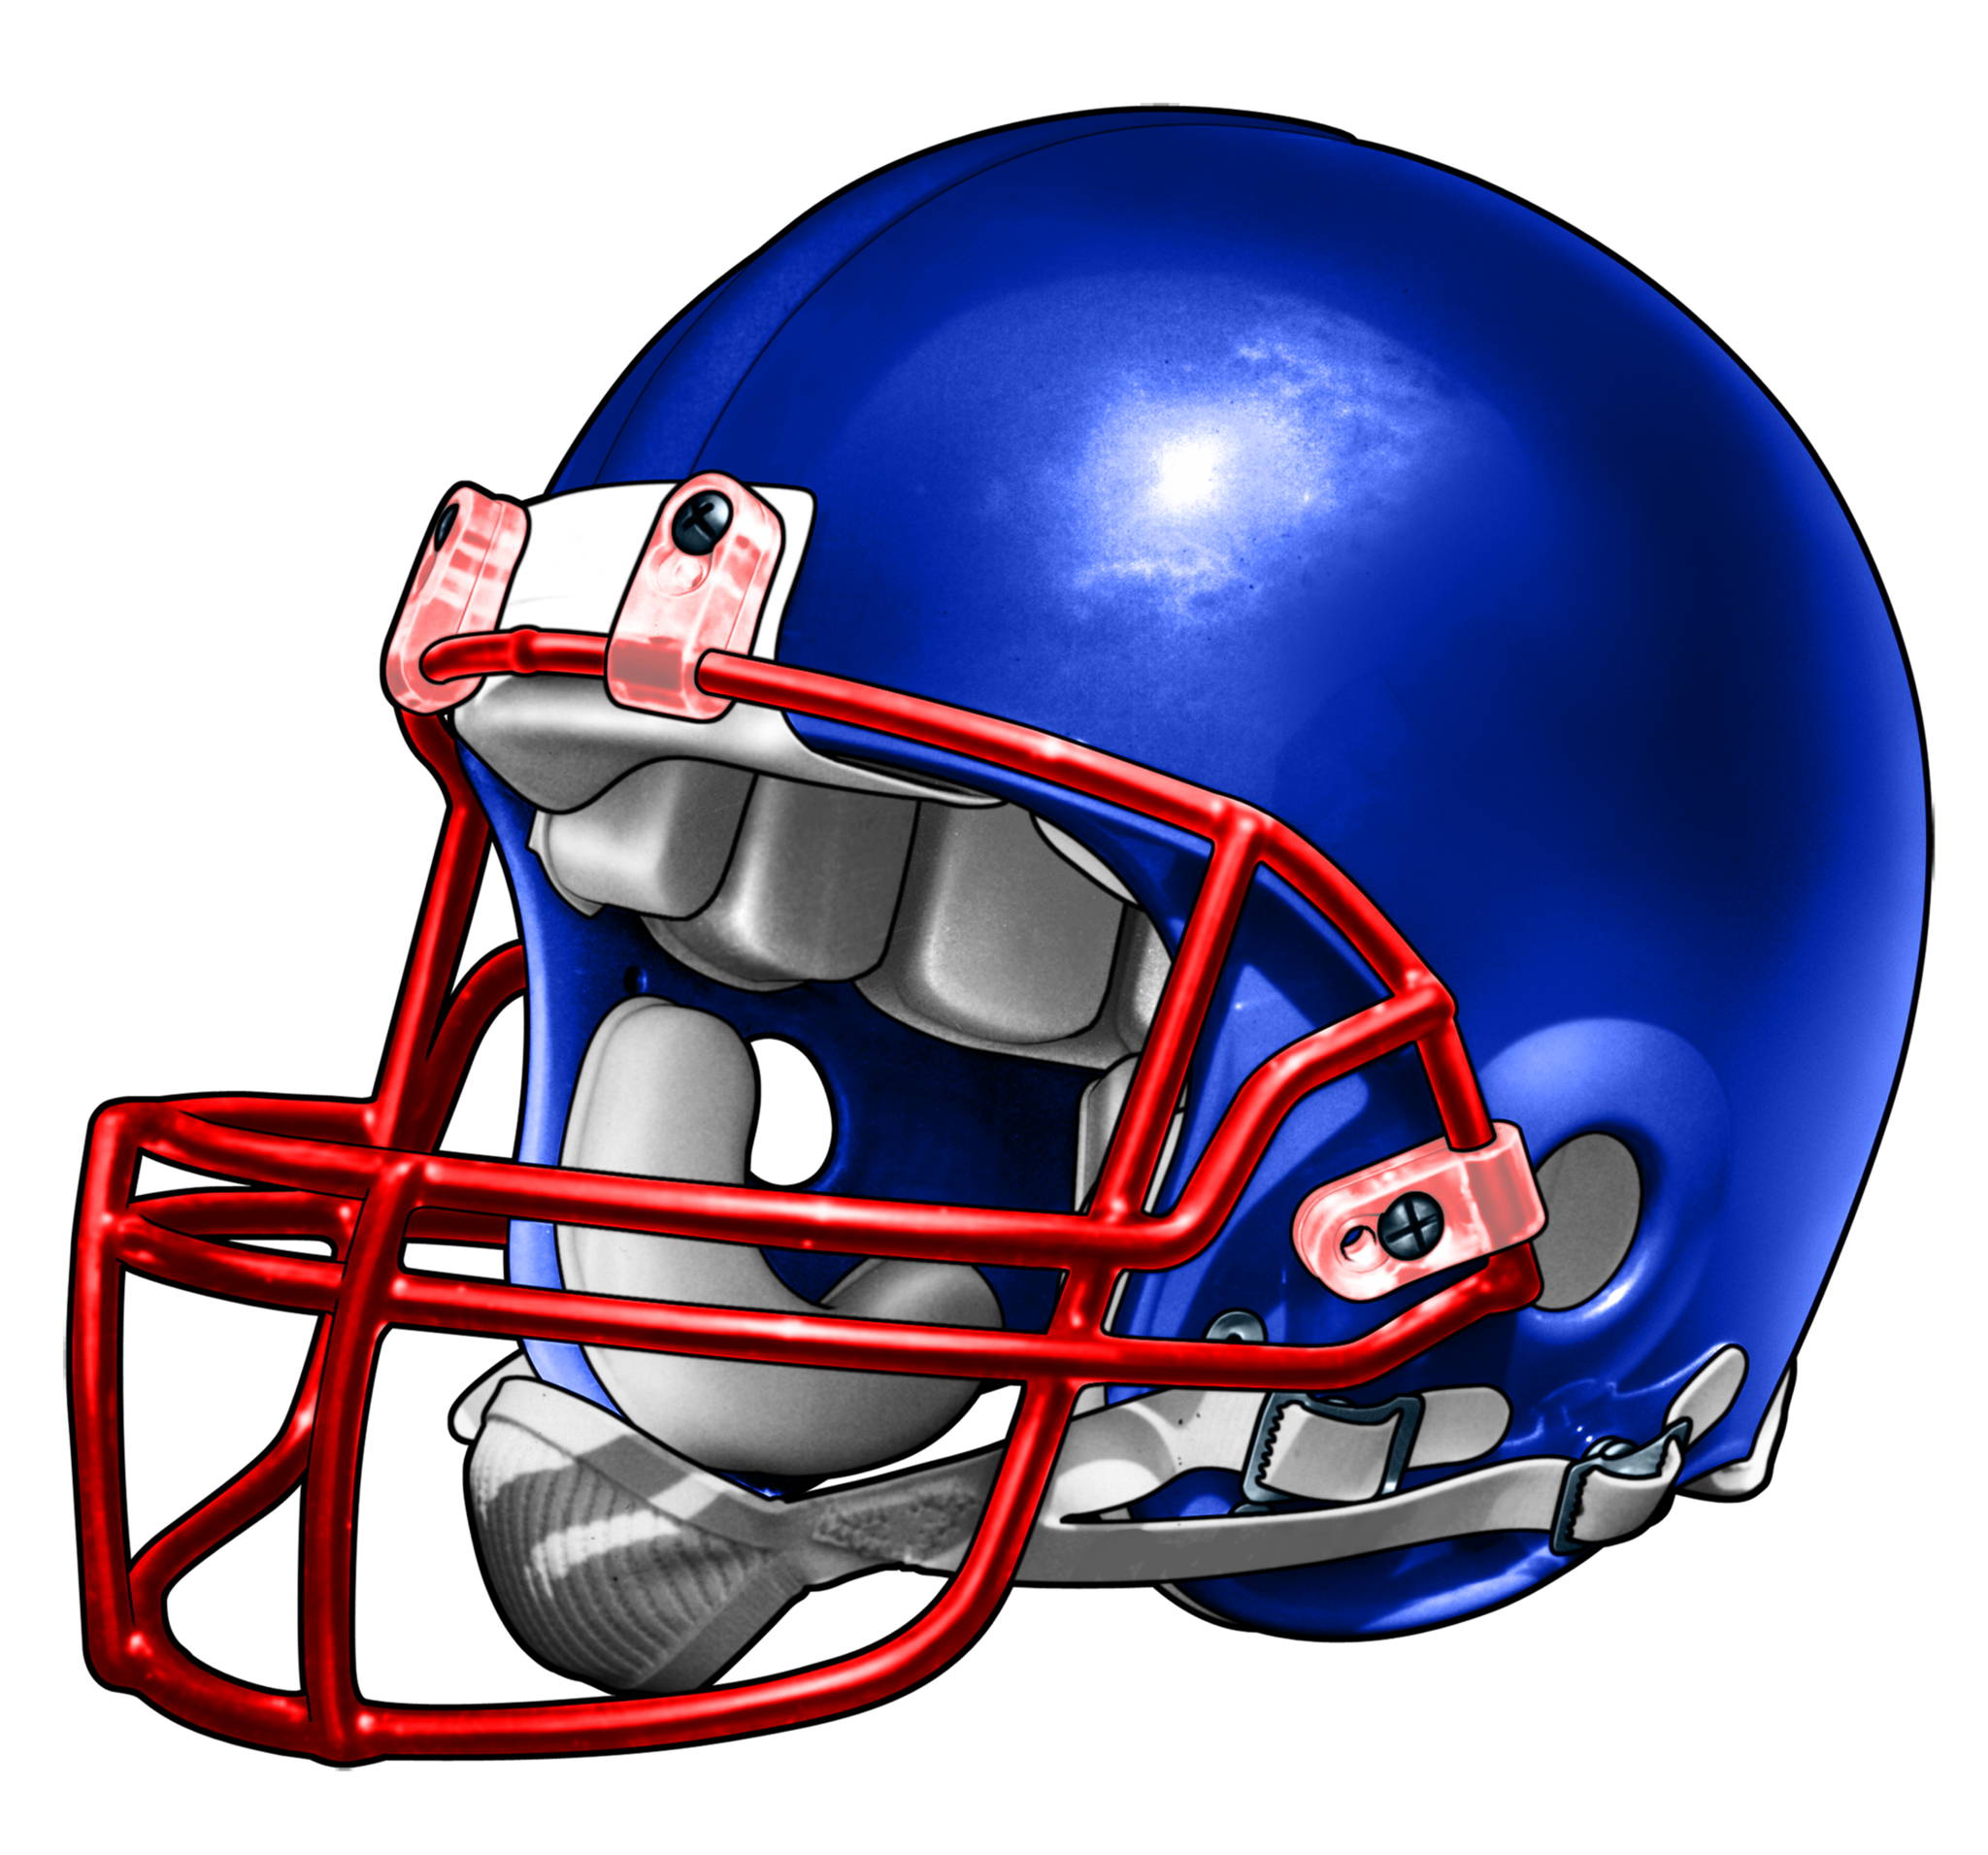 2048x1911 Blue And Red Contrasting Football Helmet T Shirt, Fb20003 Vovo Inc